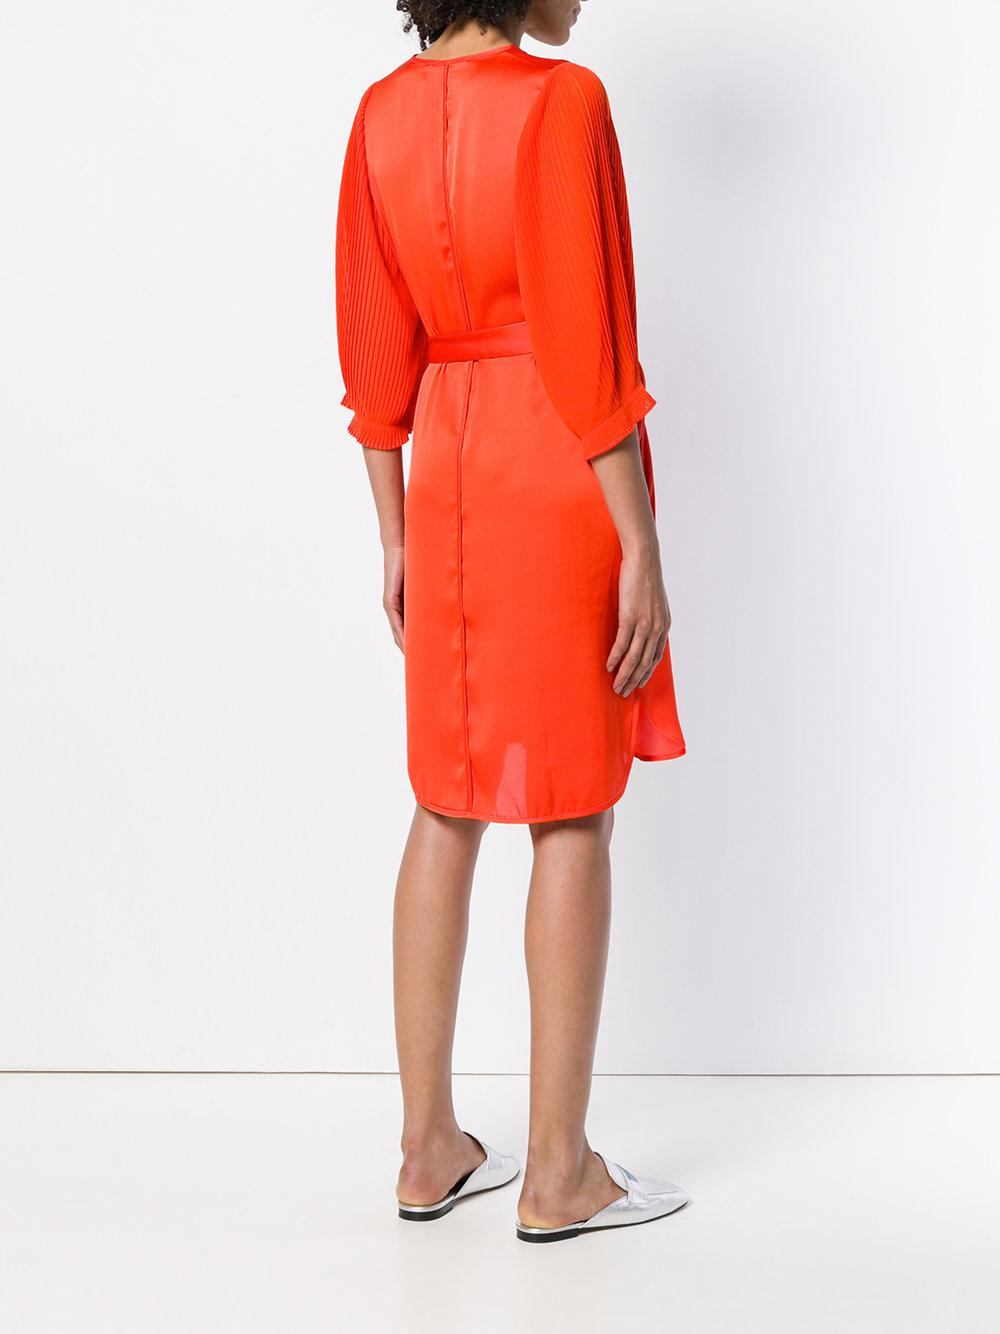 Buy Cheap For Sale Sale Genuine belted V-neck dress - Yellow & Orange By Malene Birger Low Shipping Online Discount Cheap eCuee1U